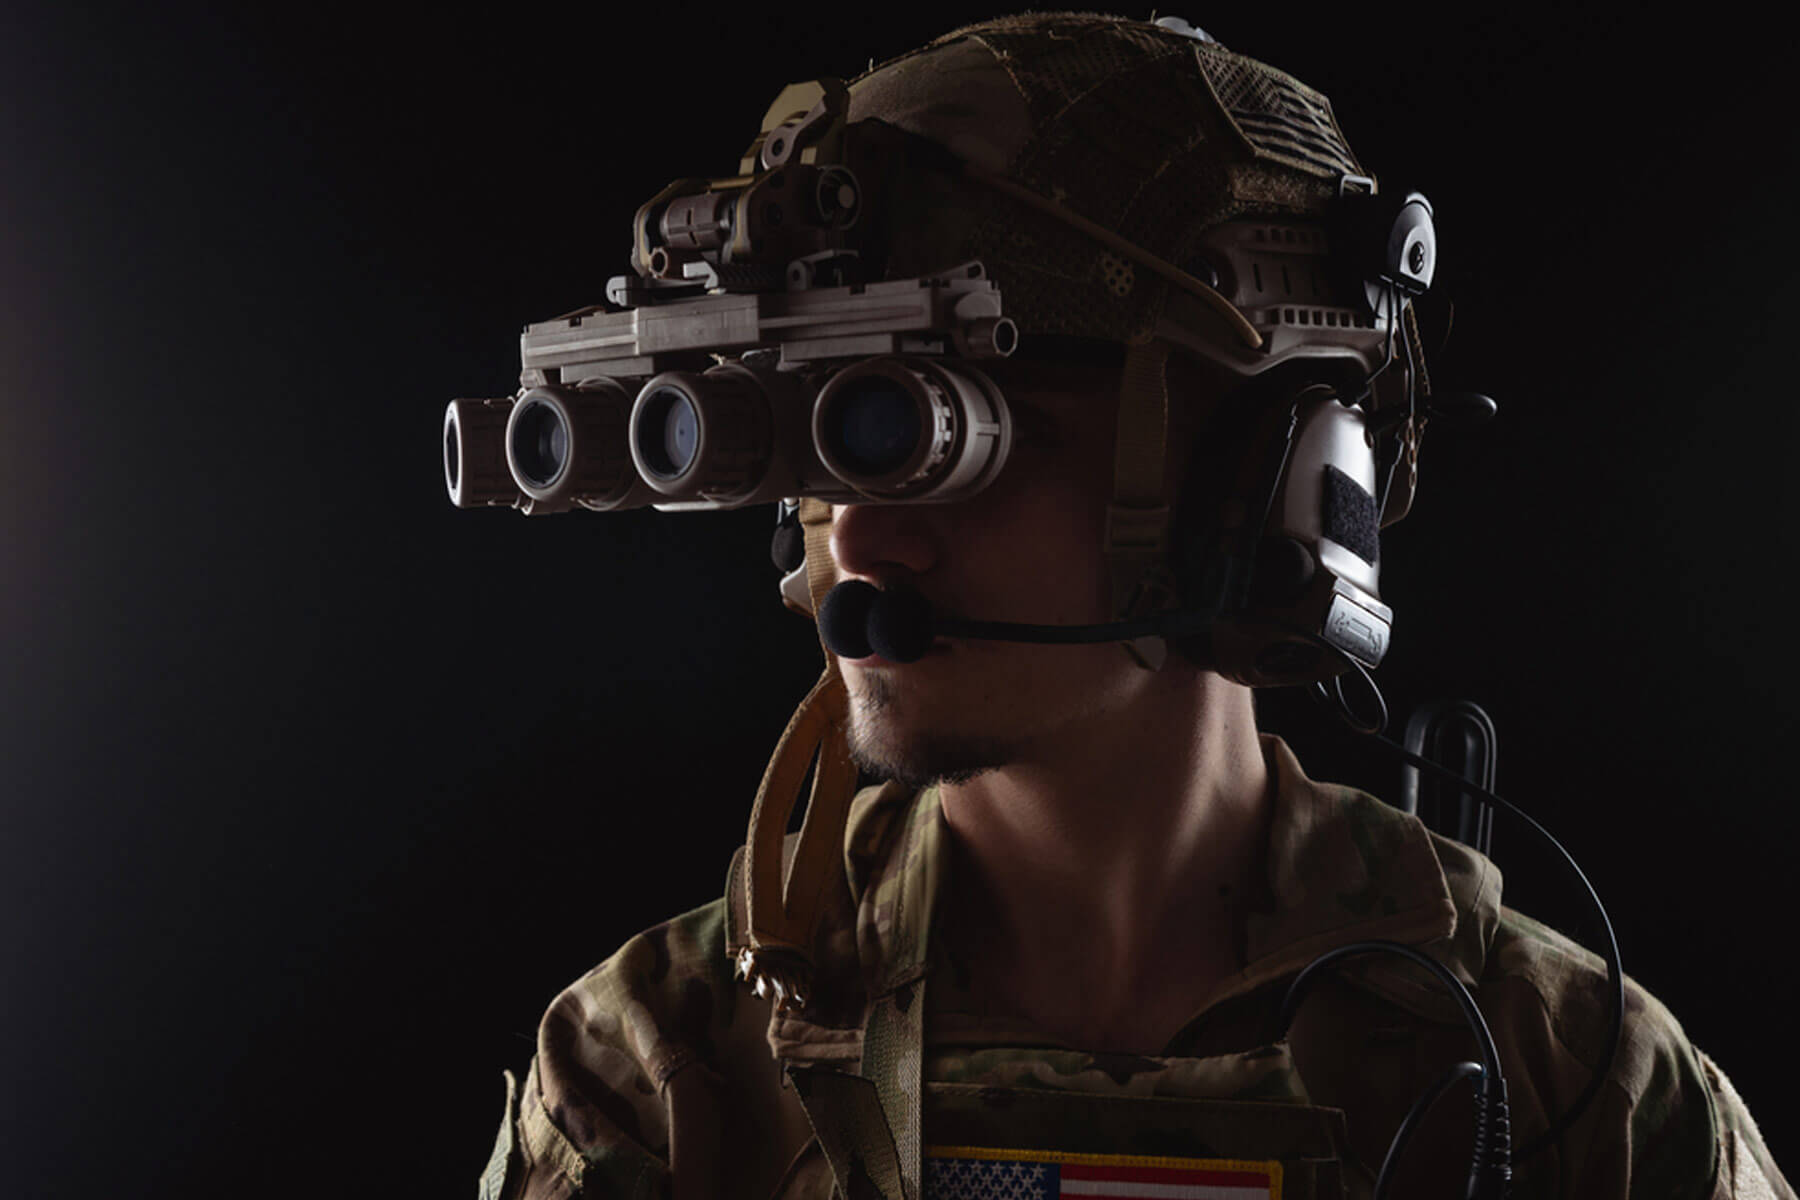 soldier wearing night vision equipment